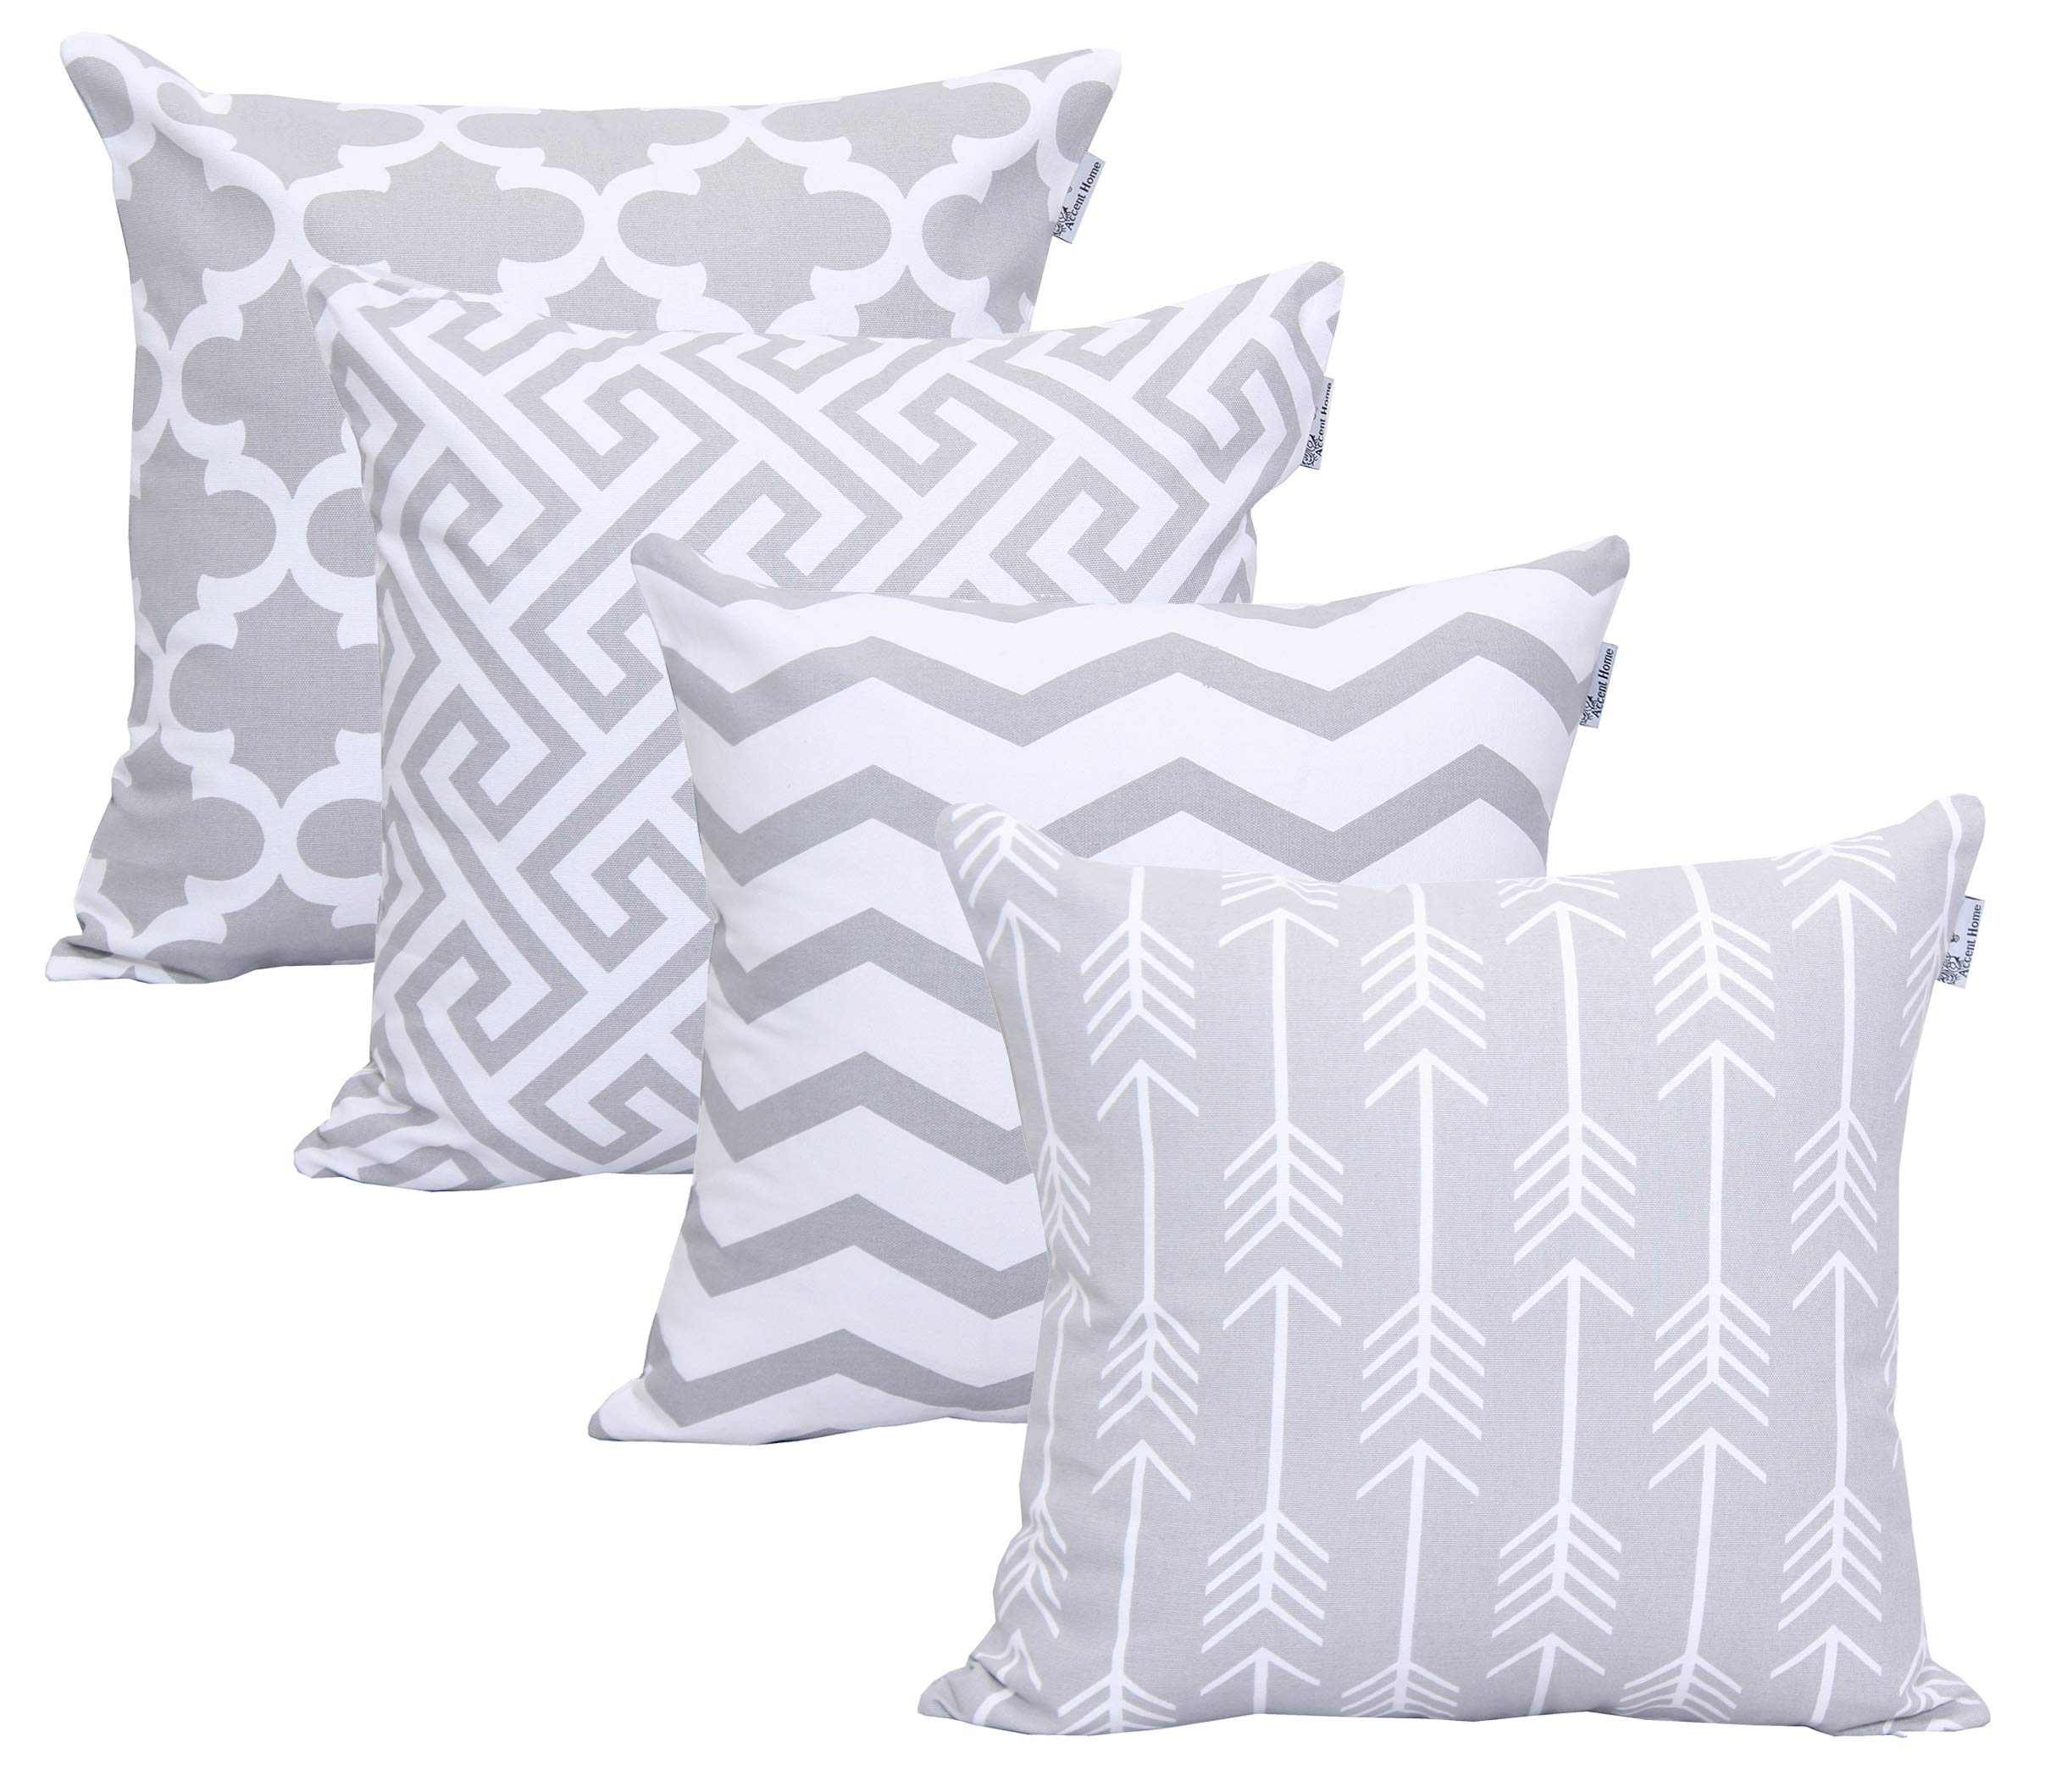 ACCENTHOME Square Printed Cotton Cushion Cover,Throw Pillow Case, Slipover Pillowslip for Home Sofa Couch Chair Back Seat,4pc Pack 18x18 in Silver Ash Color